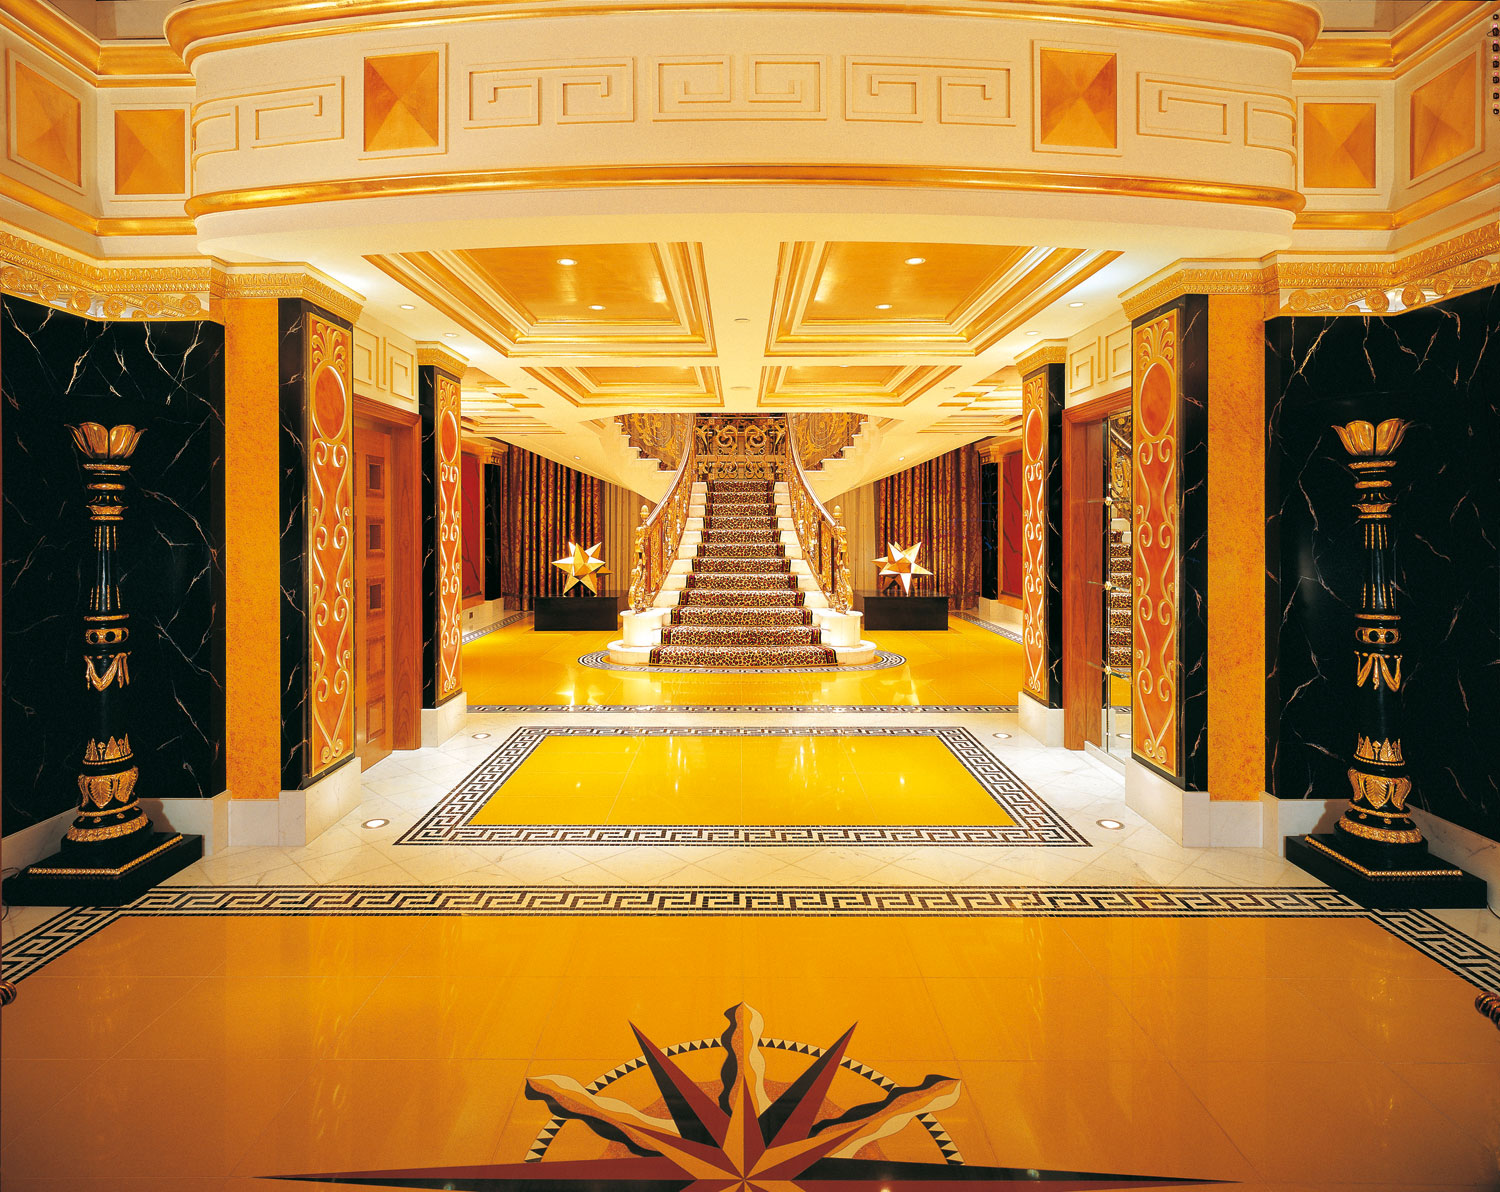 Top 10 most expensive hotel suites in the world 2011 the for The most luxurious hotel in dubai